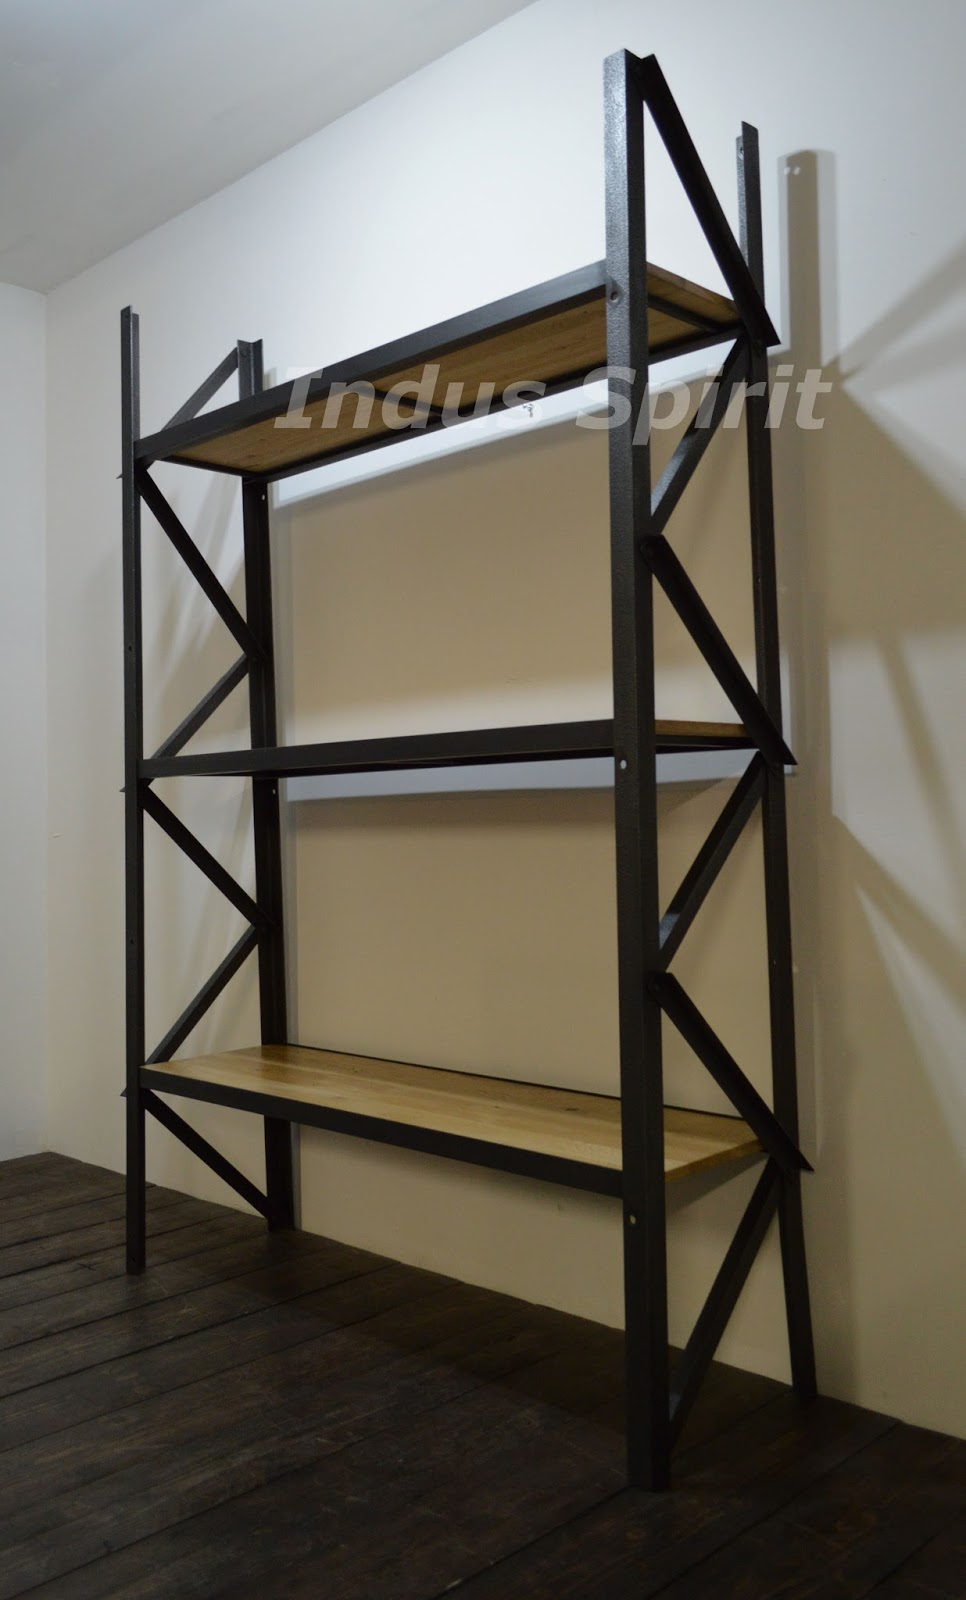 Tag re design industriel - Meuble etagere design ...